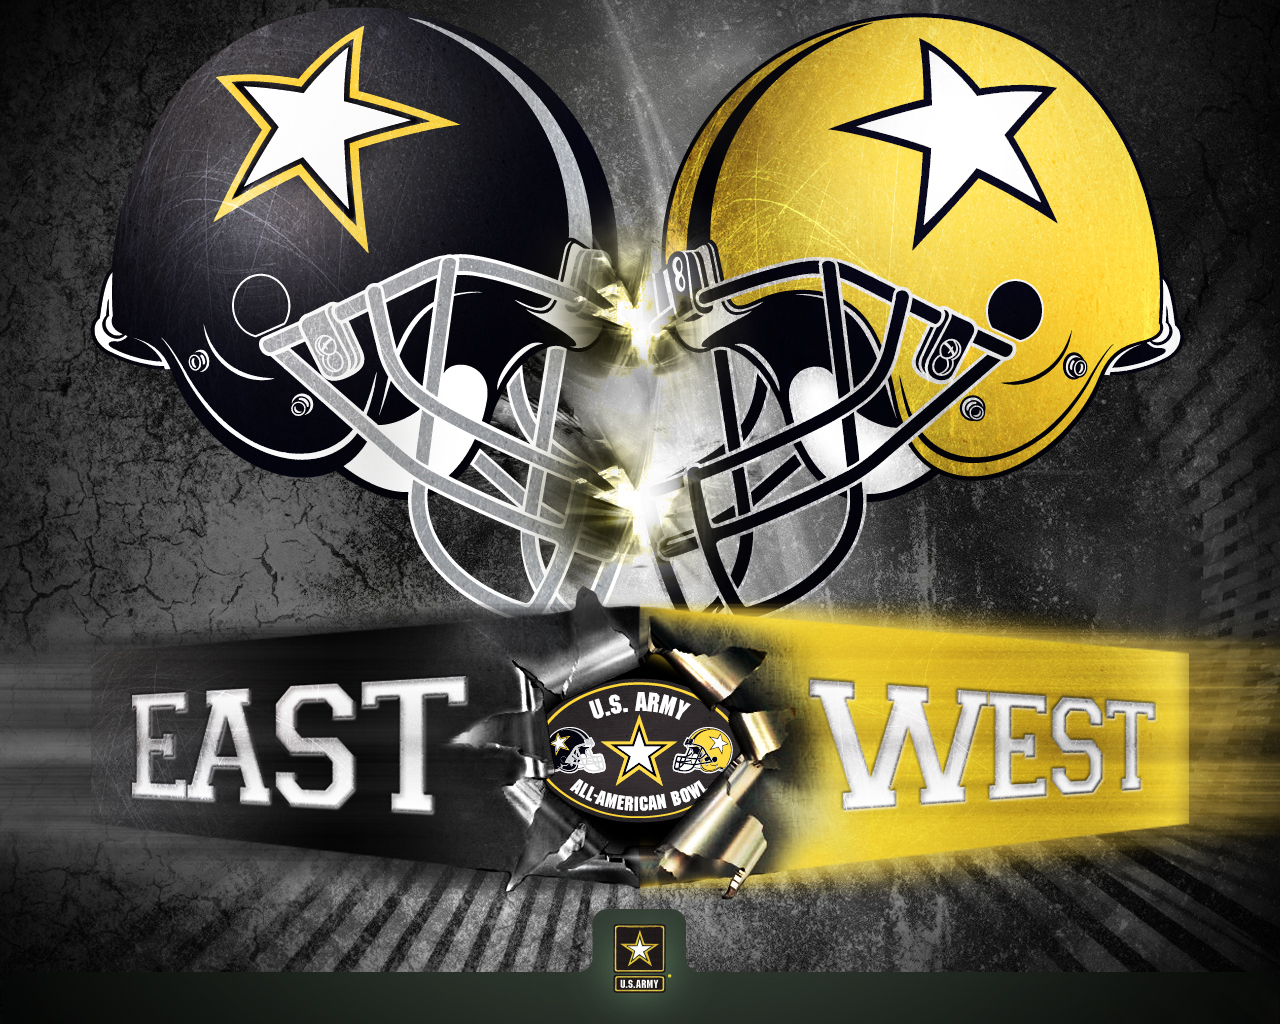 Wallpapers goarmy wallpaper us army all american bowl aabwallpaper800x600 1280 x 1024 voltagebd Image collections